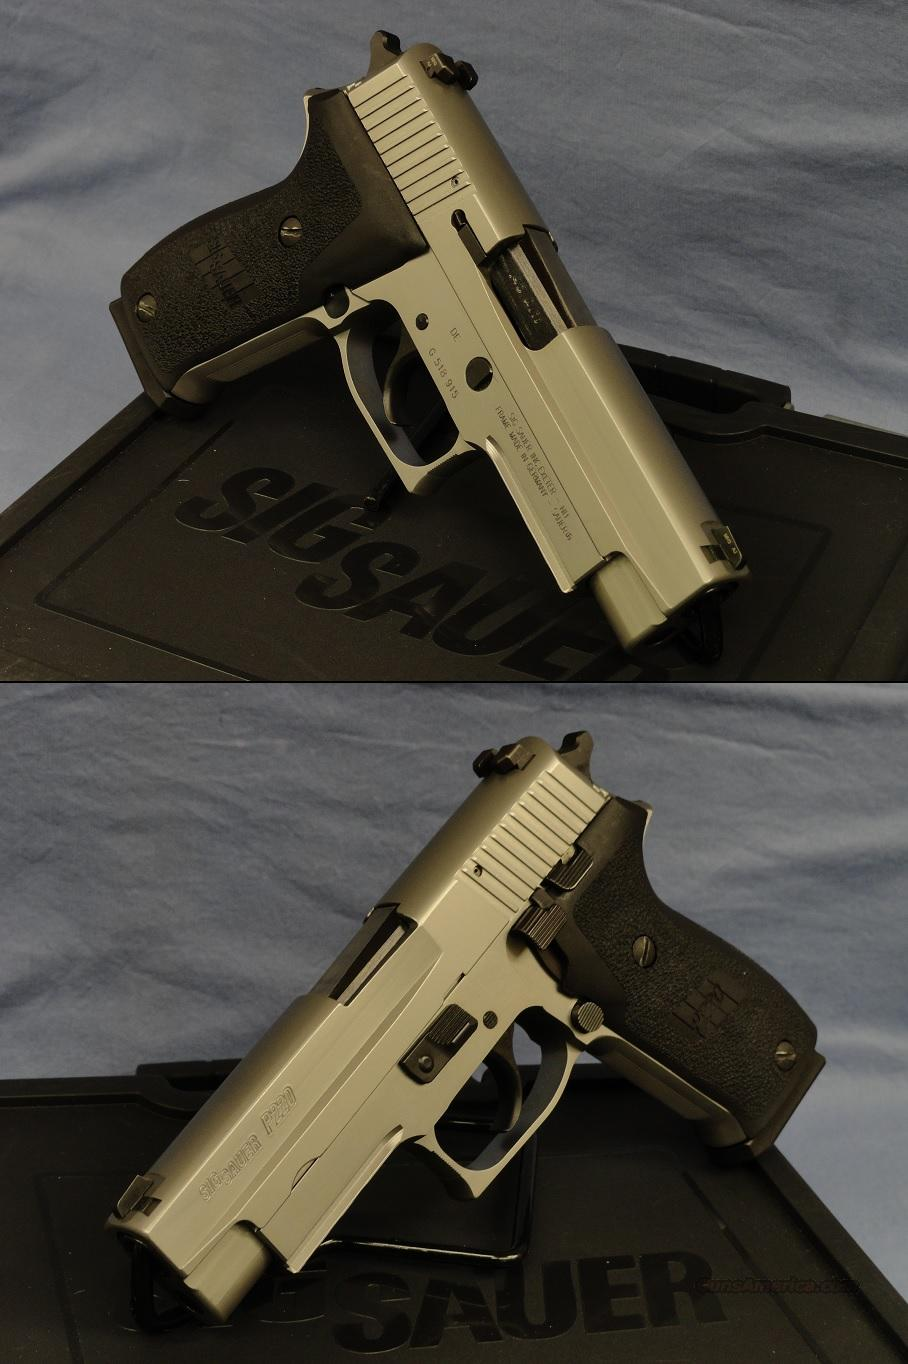 Sig Sauer P220 Stainless .45ACP Full Size, NIB - Model discontinued  Guns > Pistols > Sig - Sauer/Sigarms Pistols > P220